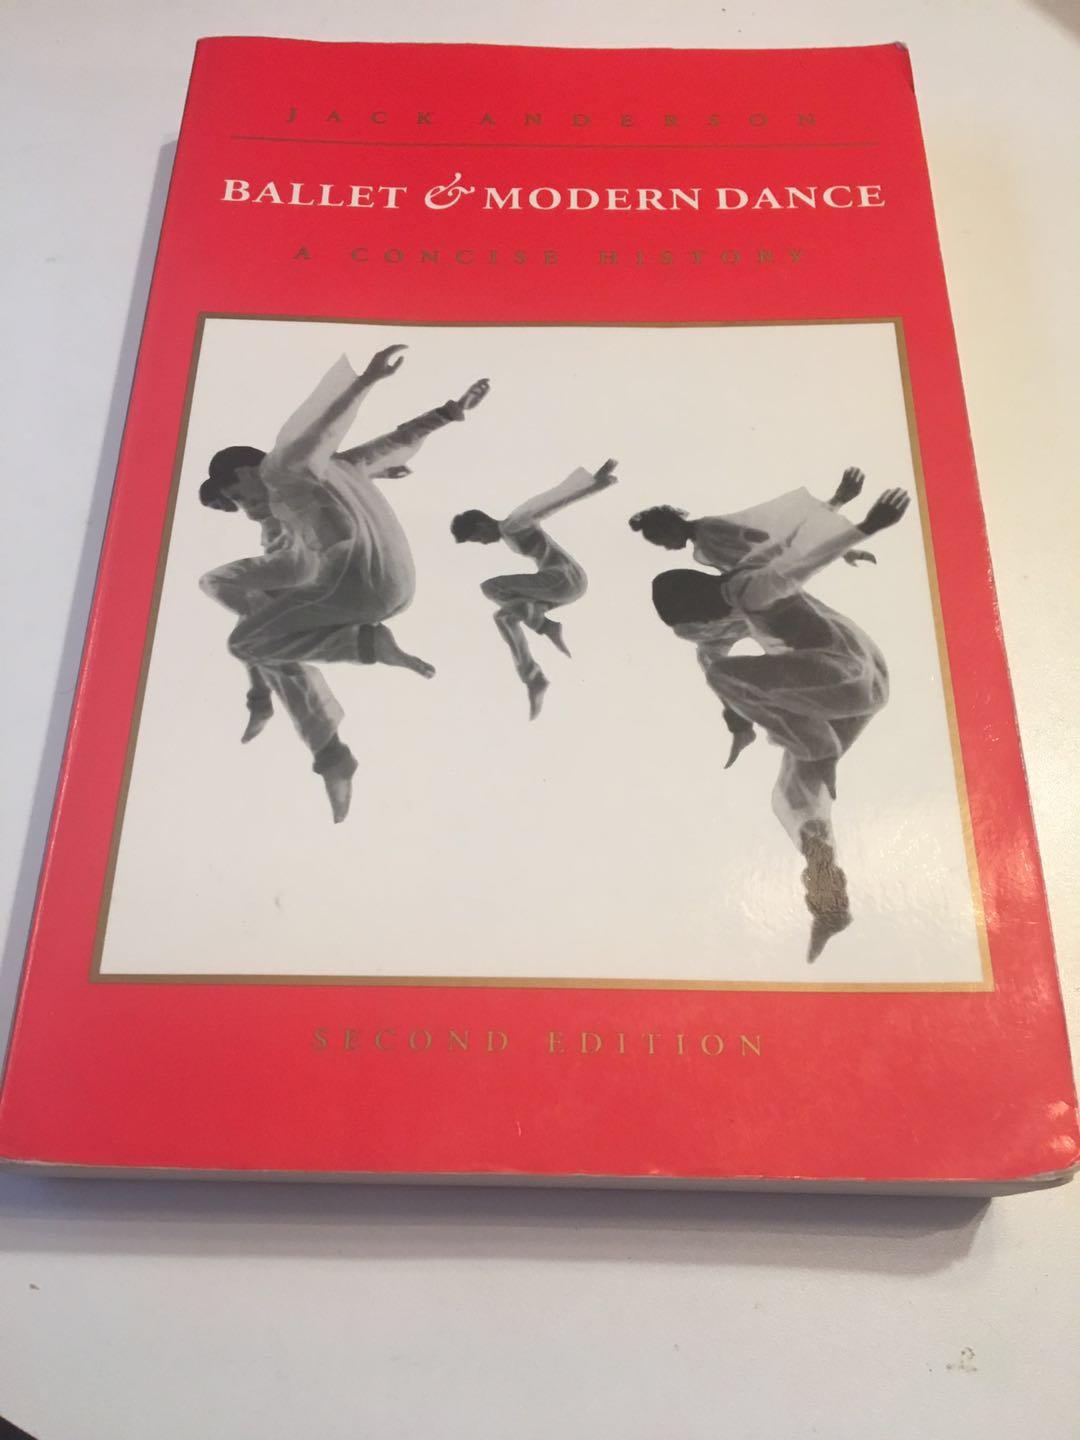 Ballet and Modern Dance: A Concise History  Feb 1, 1993 by Jack Anderson